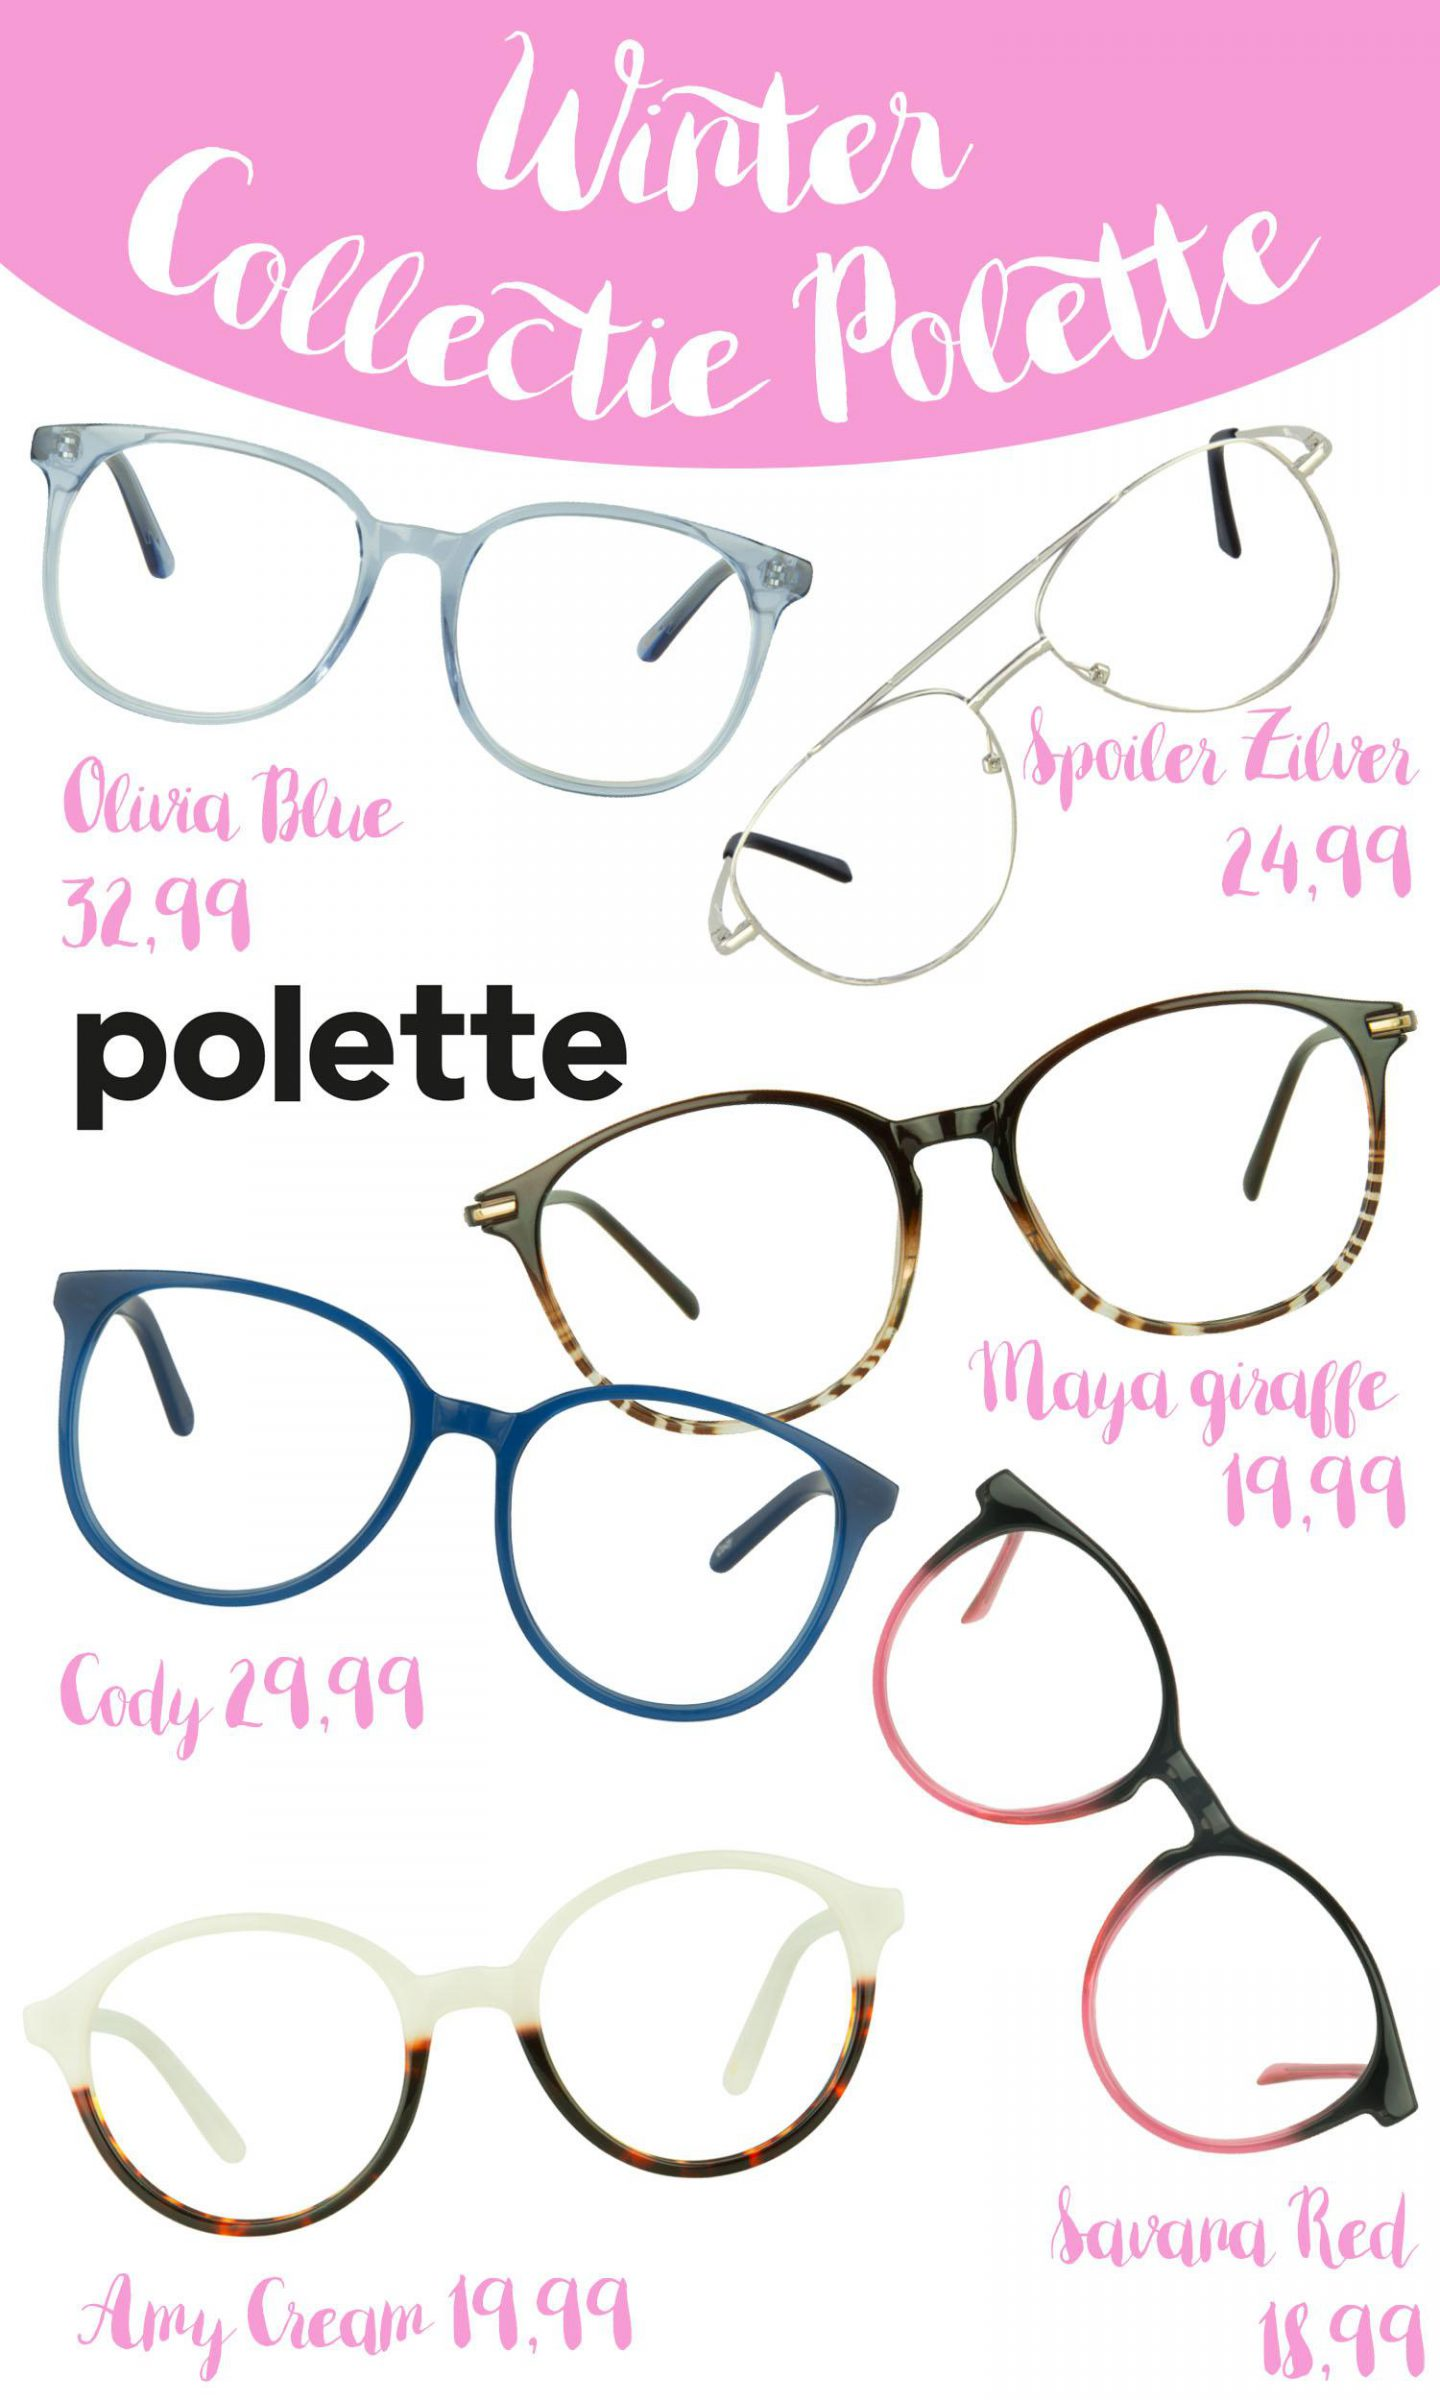 polette wintercollectie